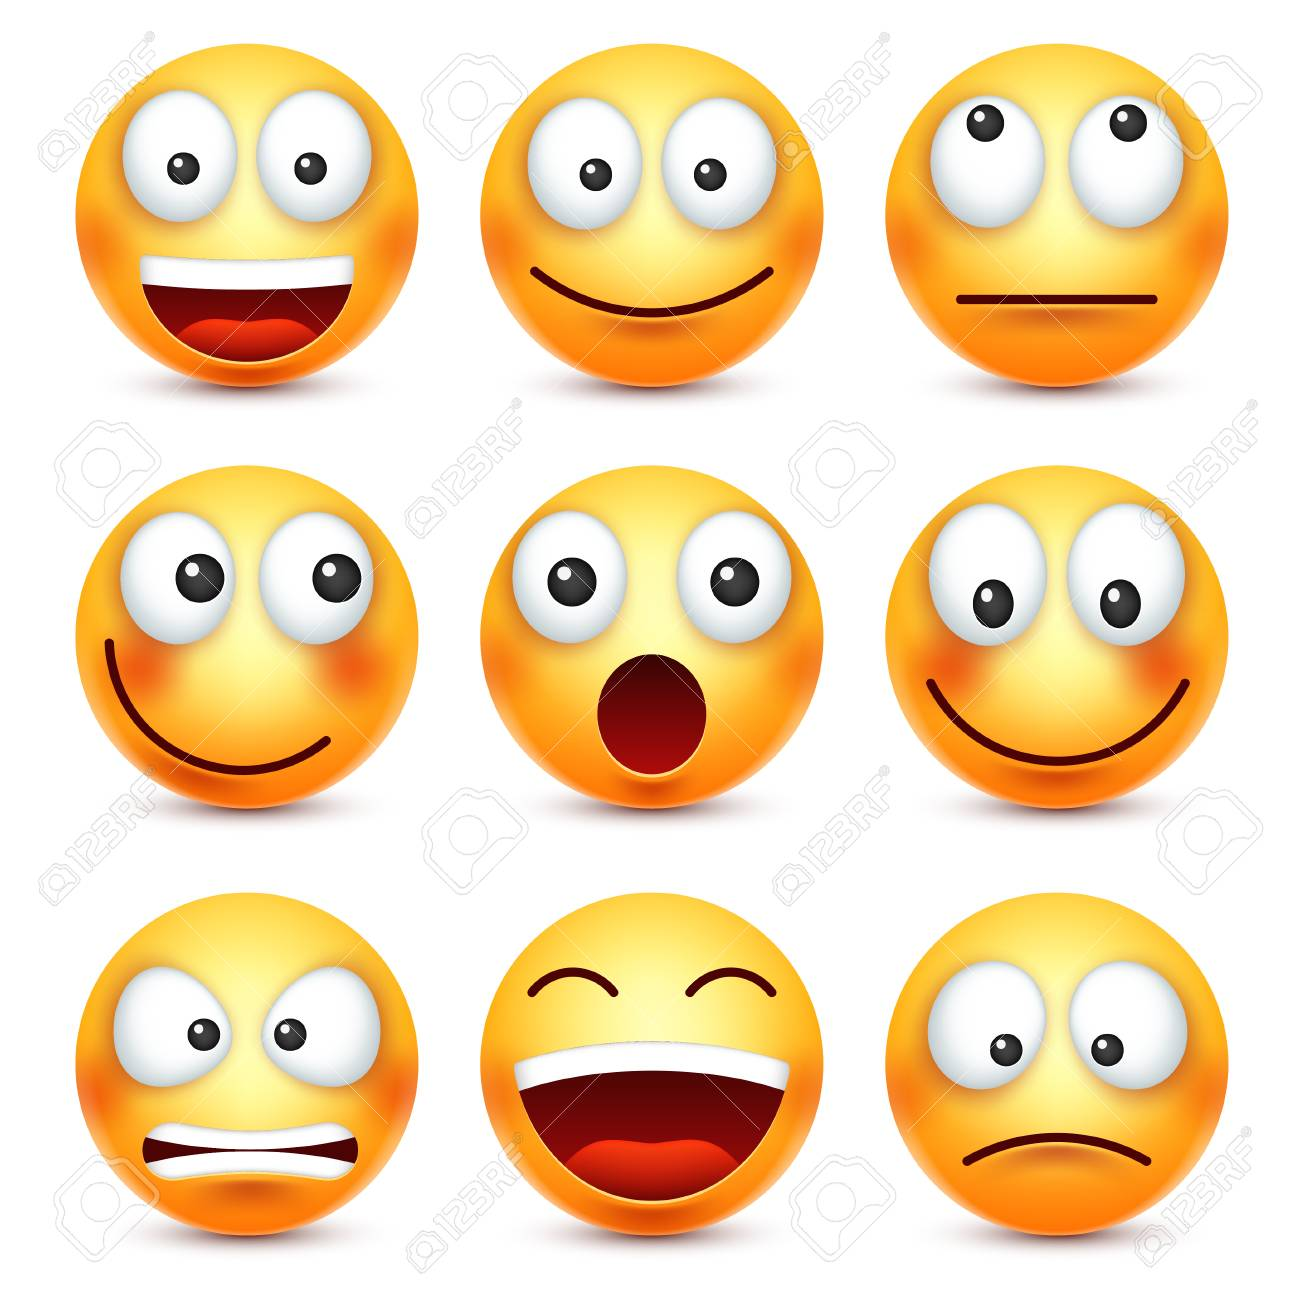 Smiley,emoticon set  Yellow face with emotions  Facial expression